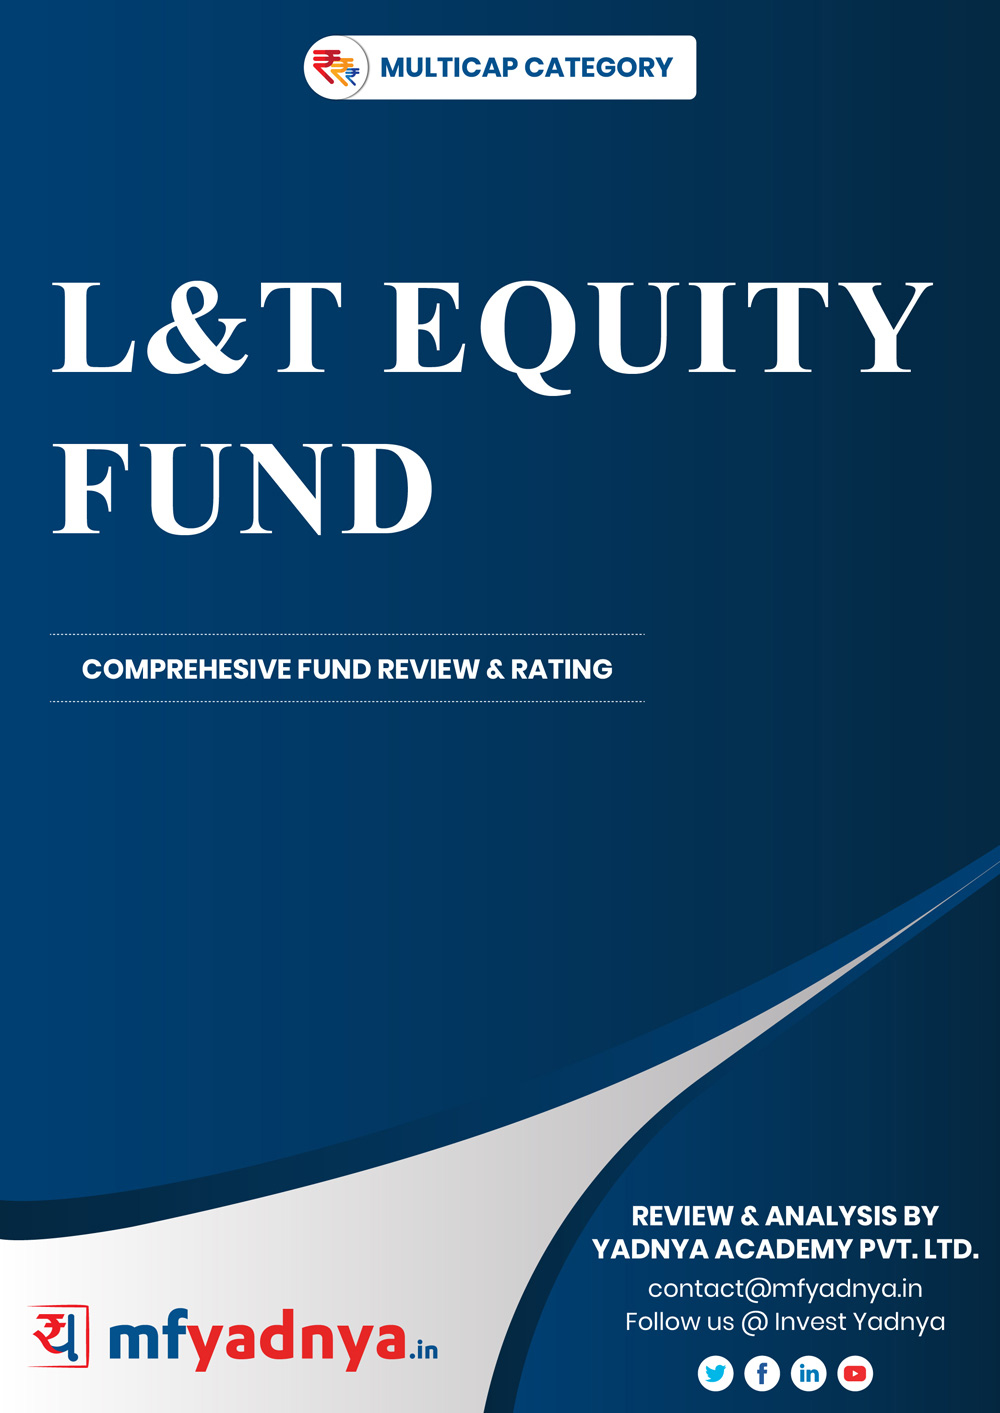 Multi-Cap Category Review - L&T Equity Fund. Most Comprehensive and detailed MF review based on Yadnya's proprietary methodology of Green, Yellow & Red Star. Detailed Analysis & Review based on July 31st, 2019 data.